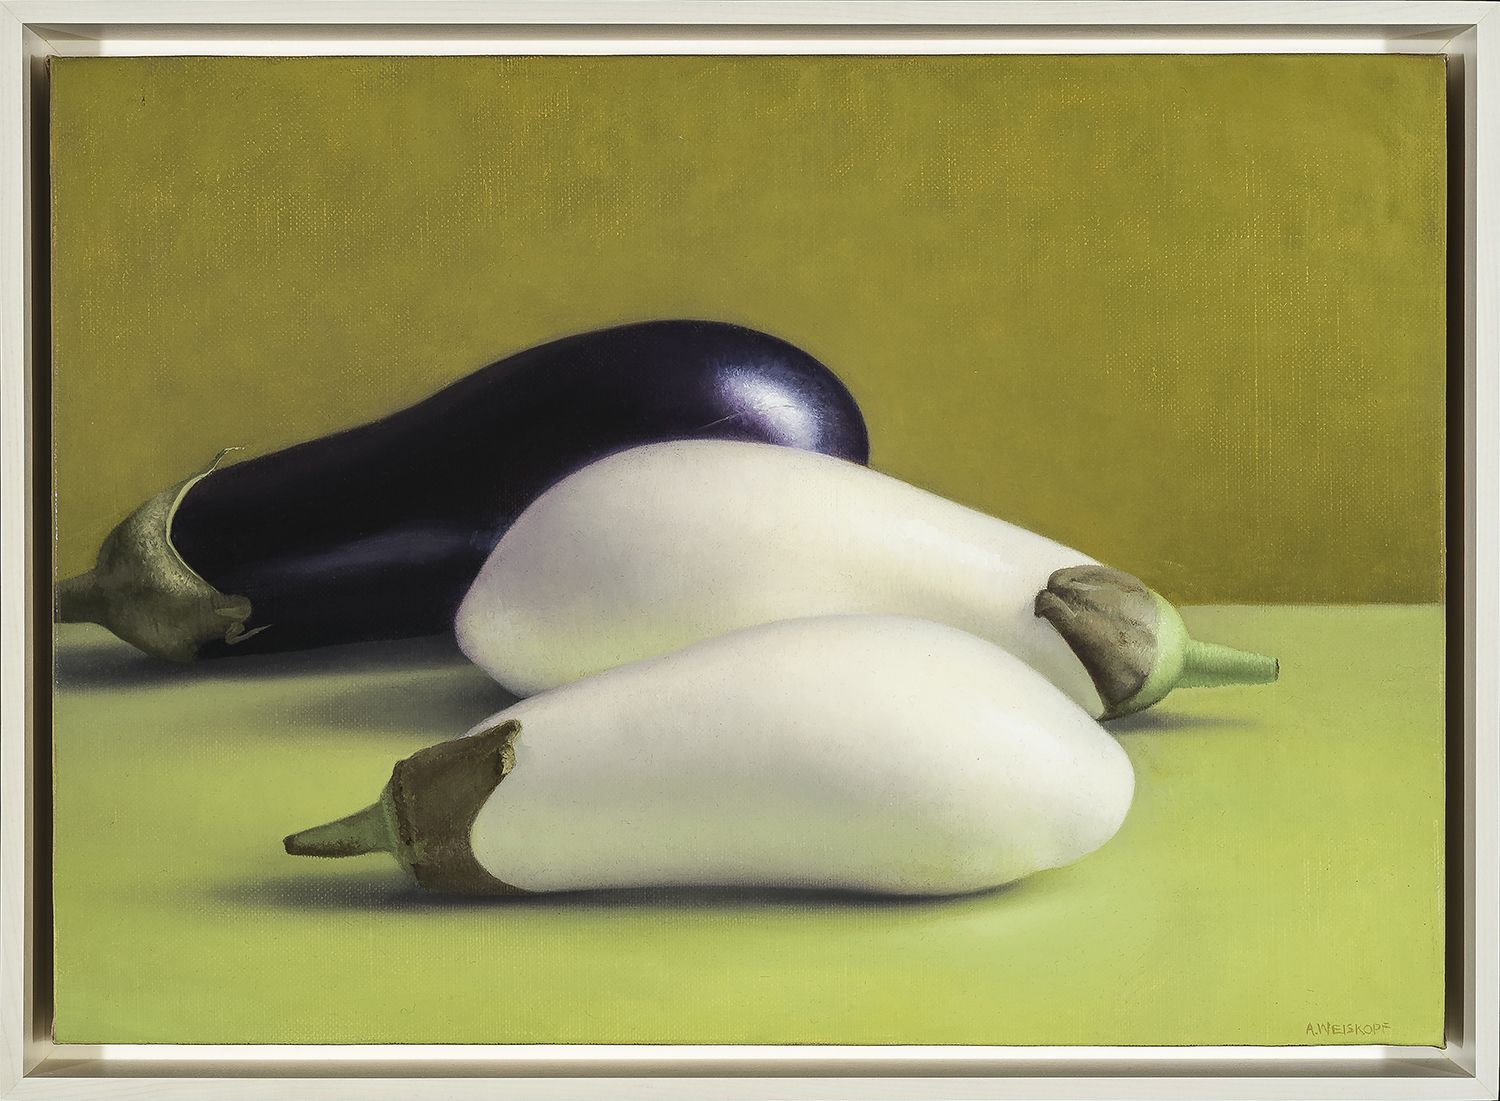 Amy Weiskopf (b. 1957), Two White Eggplants, 2015